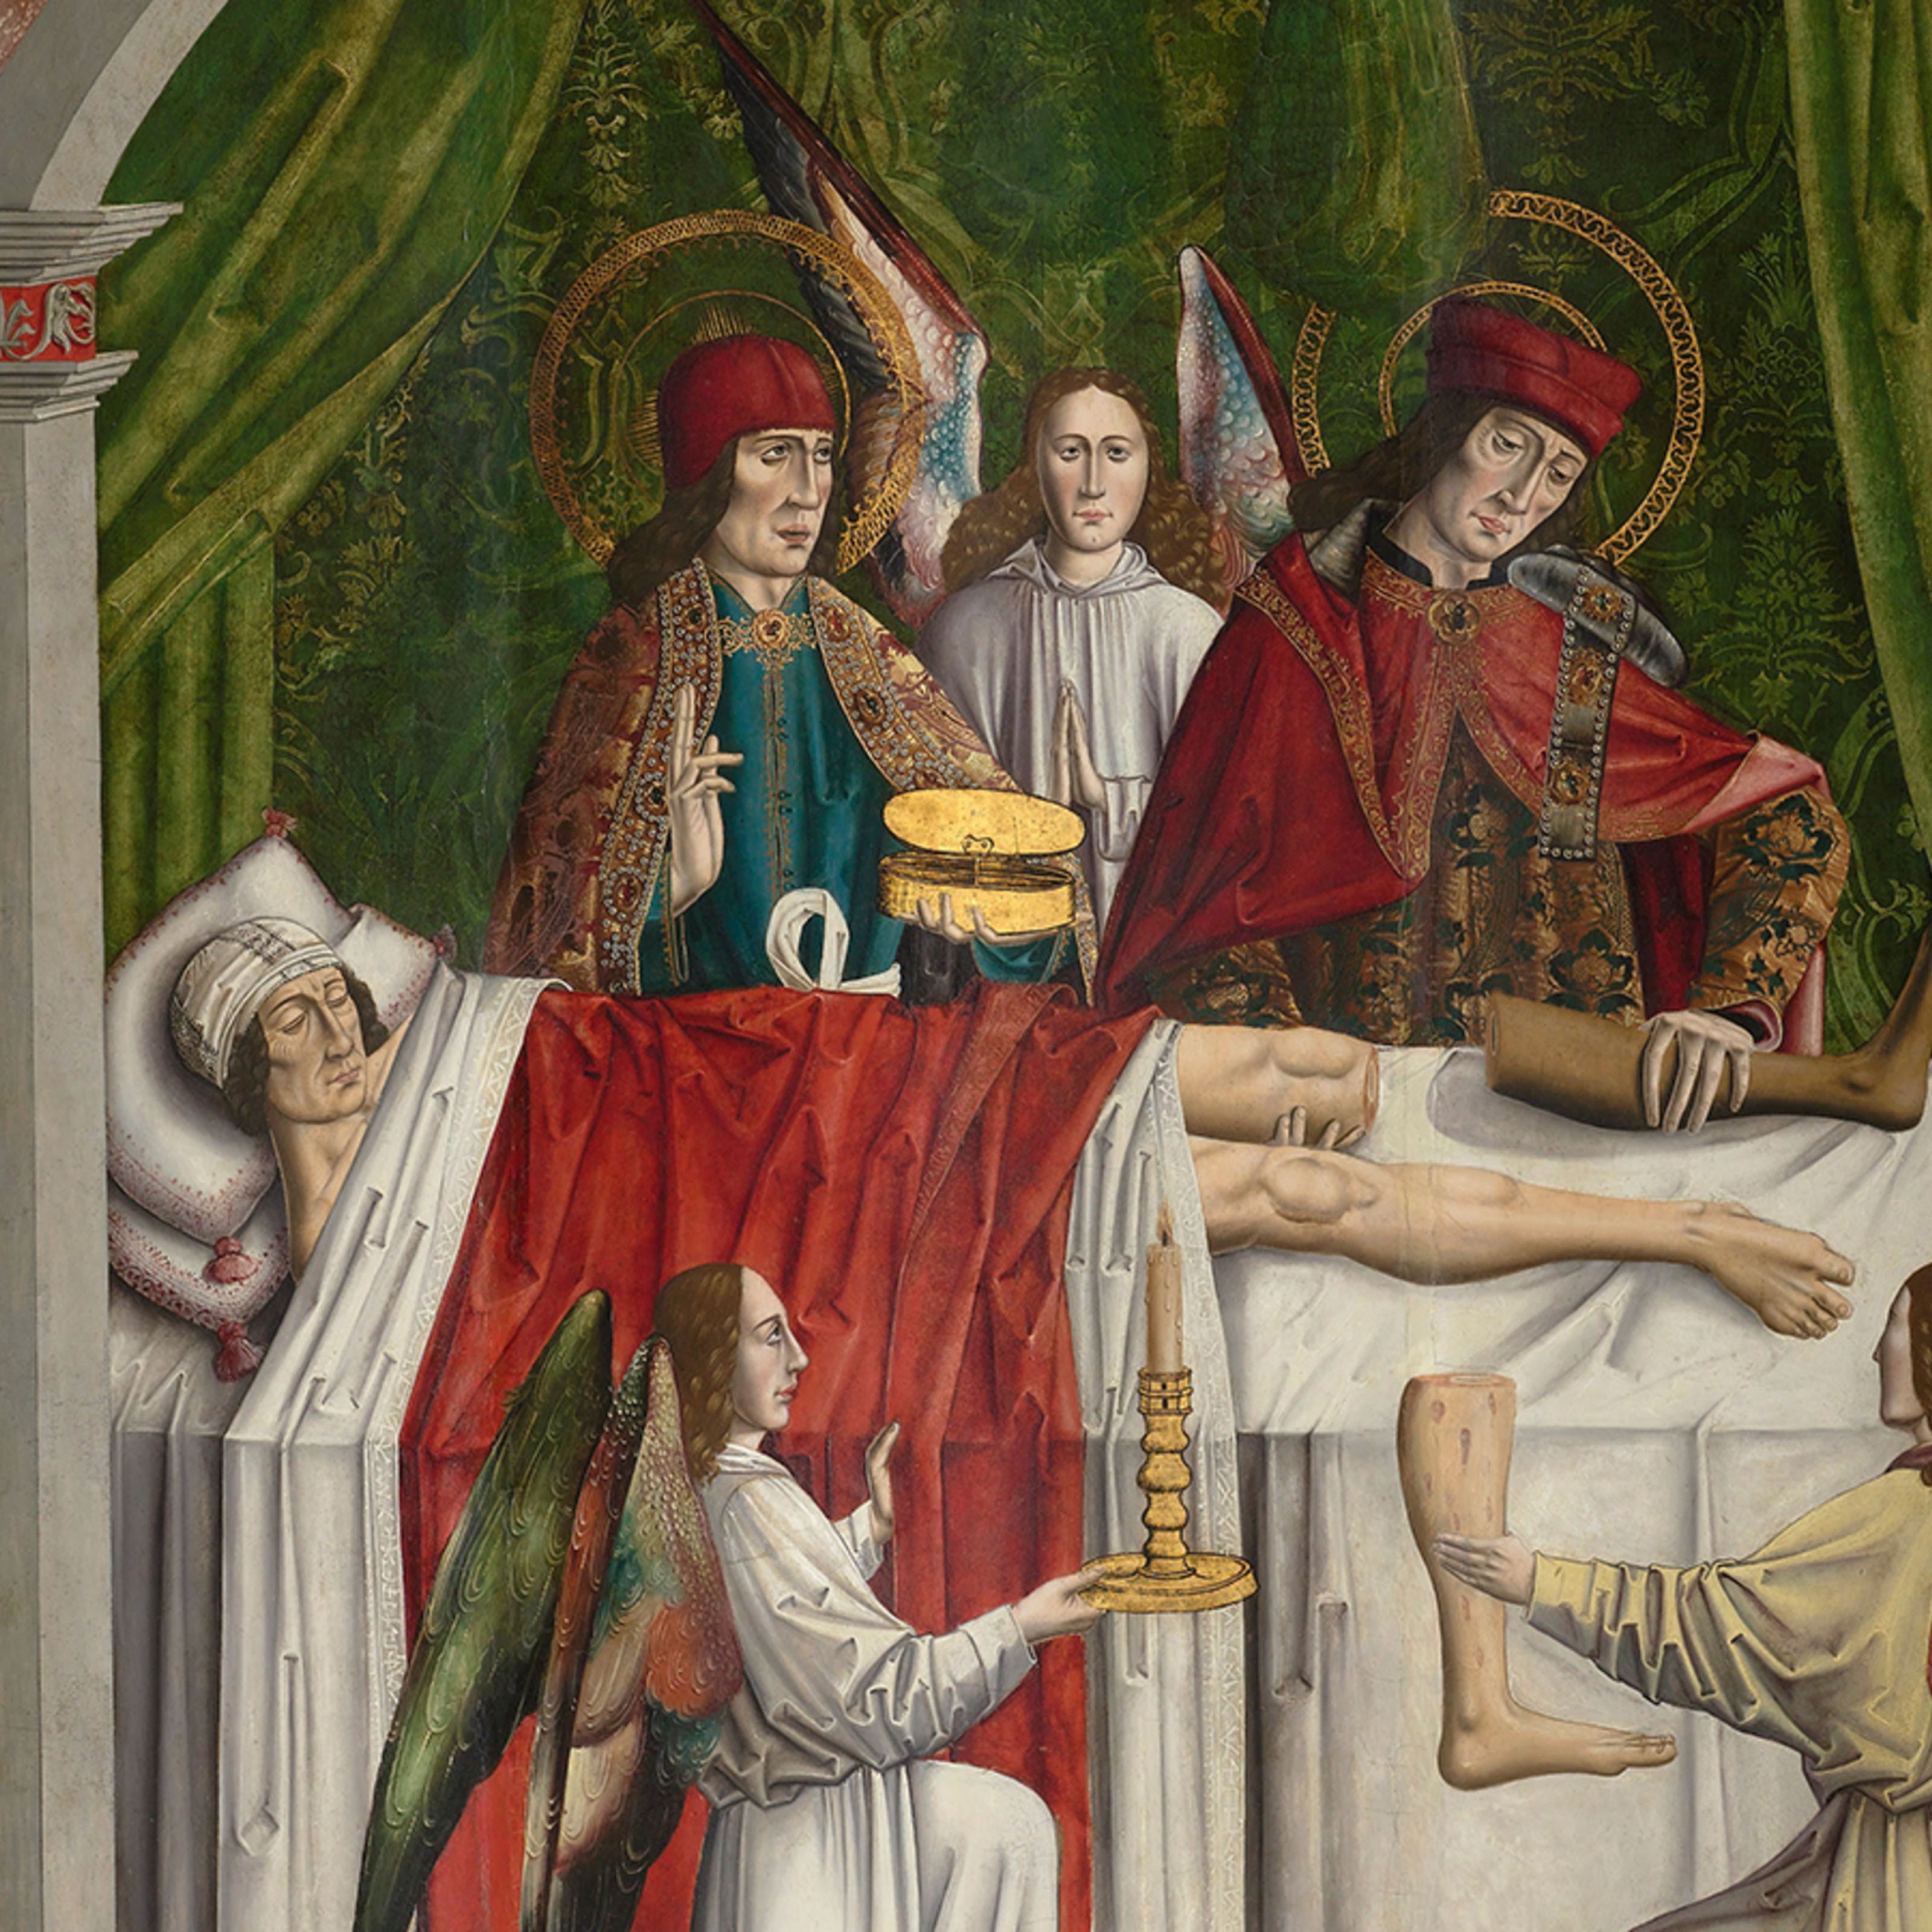 A verger's dream: Saints Cosmas and Damian performing a miraculous cure by transplantation of a leg. Oil painting attributed to the Master of Los Balbases, ca. 1495.